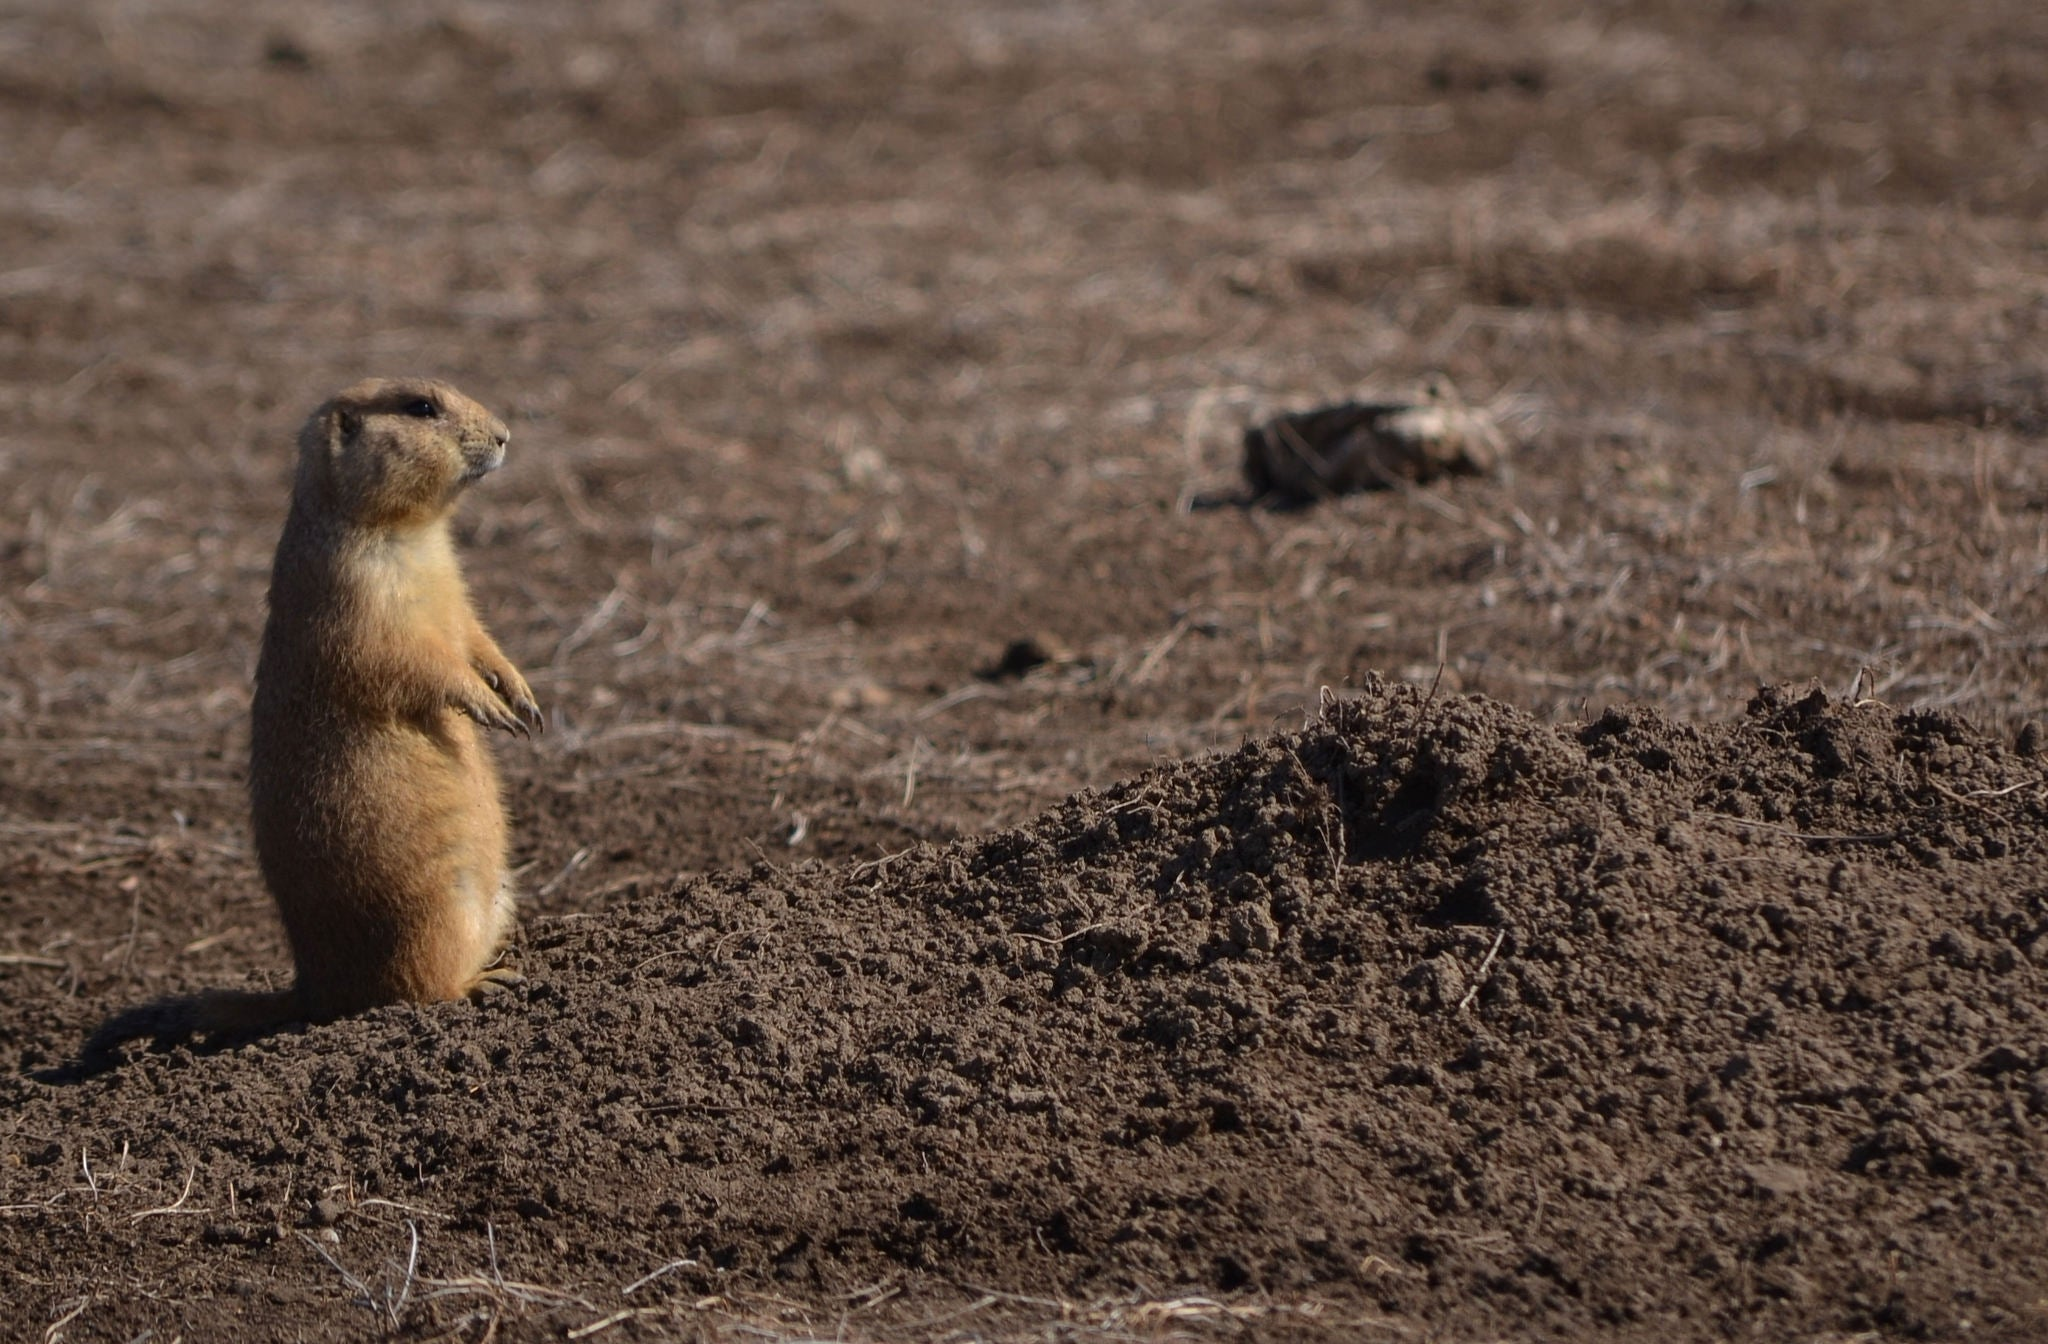 Robert's Prairie Dog Town